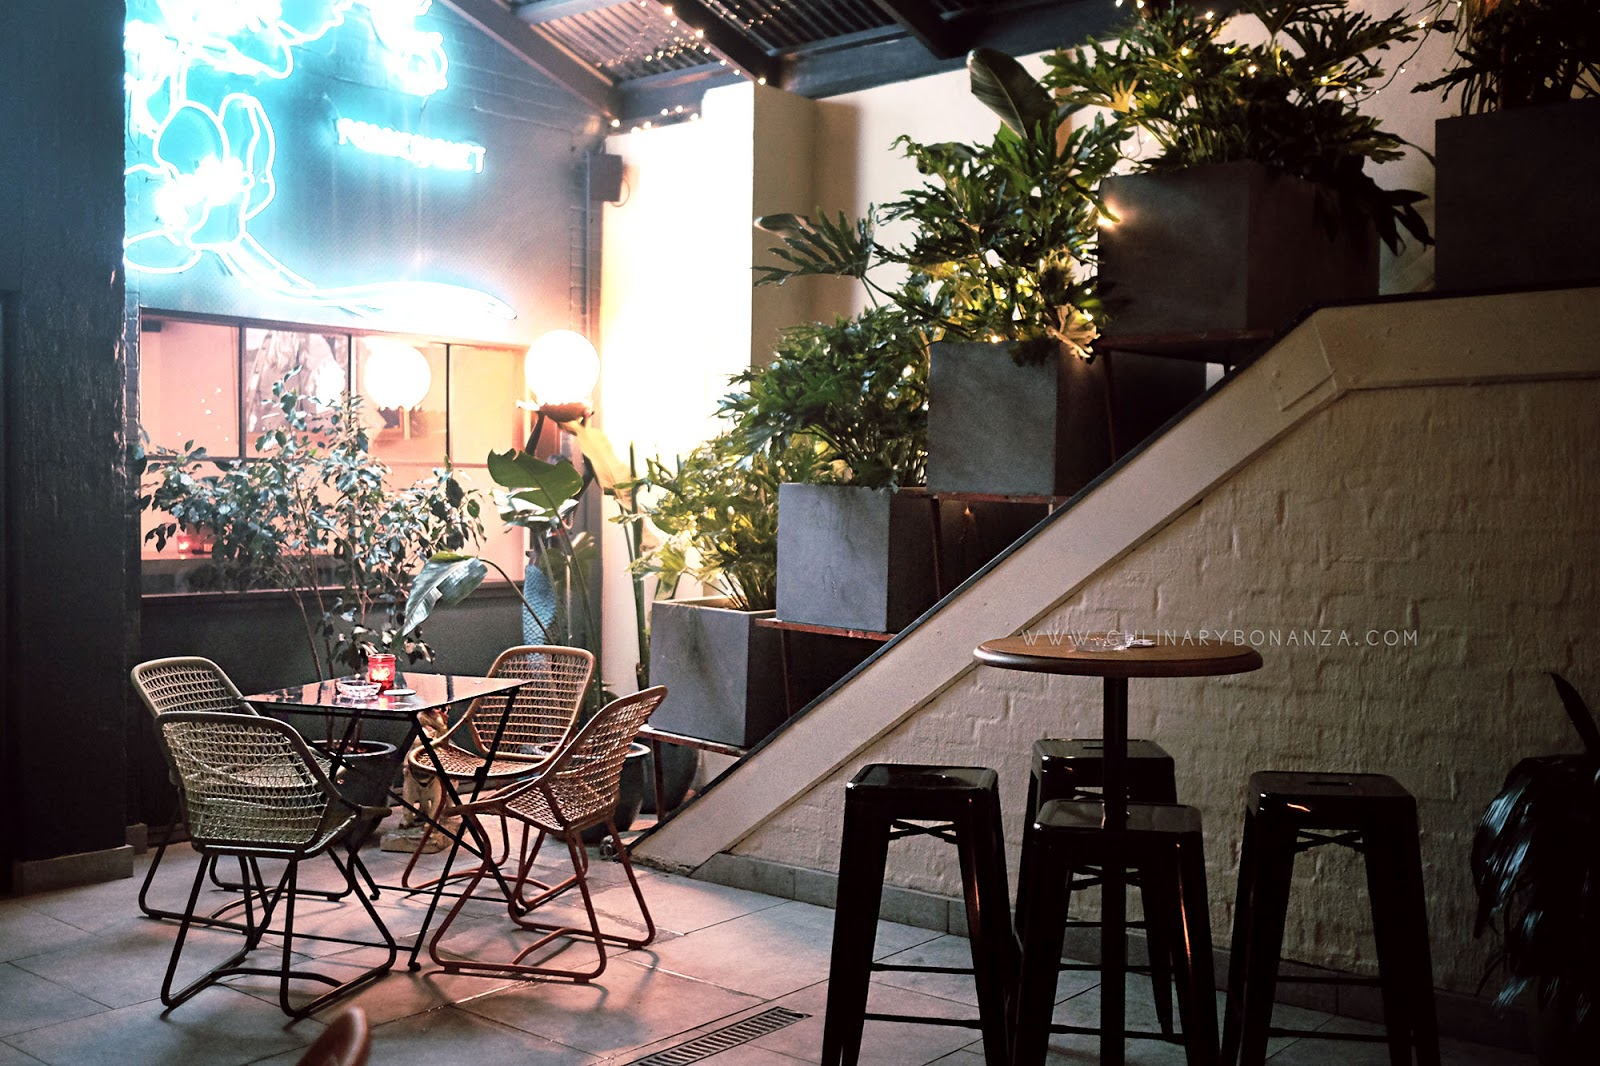 Misfits-Redfern-Bar-and-Dining(www.culinarybonanza.com)